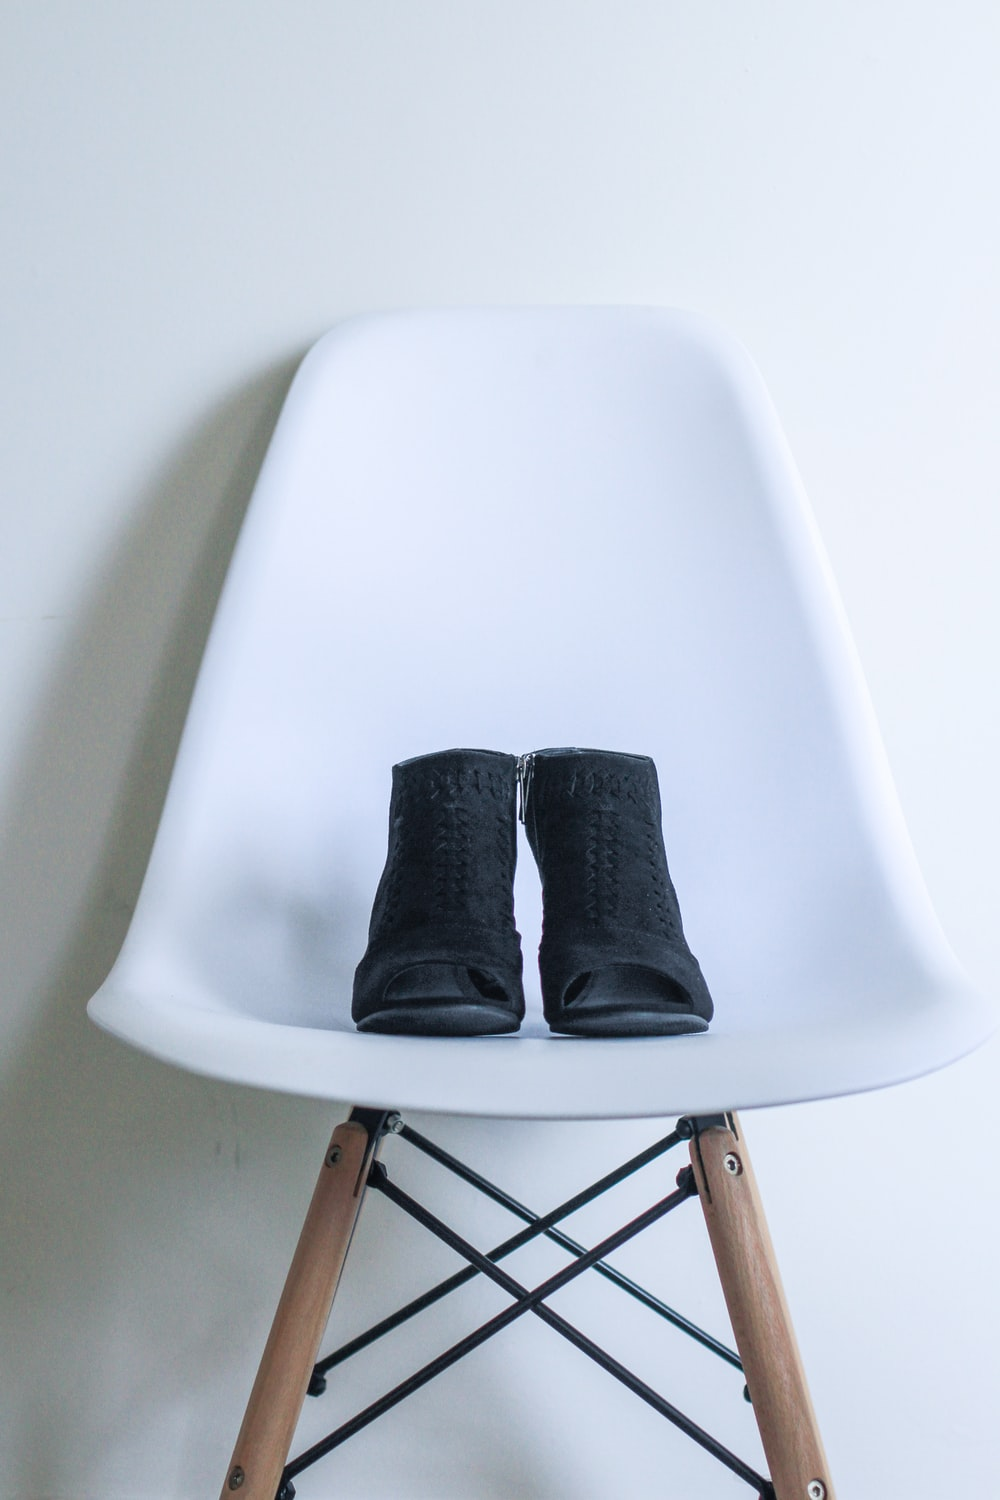 pair of black leather boots on white chair